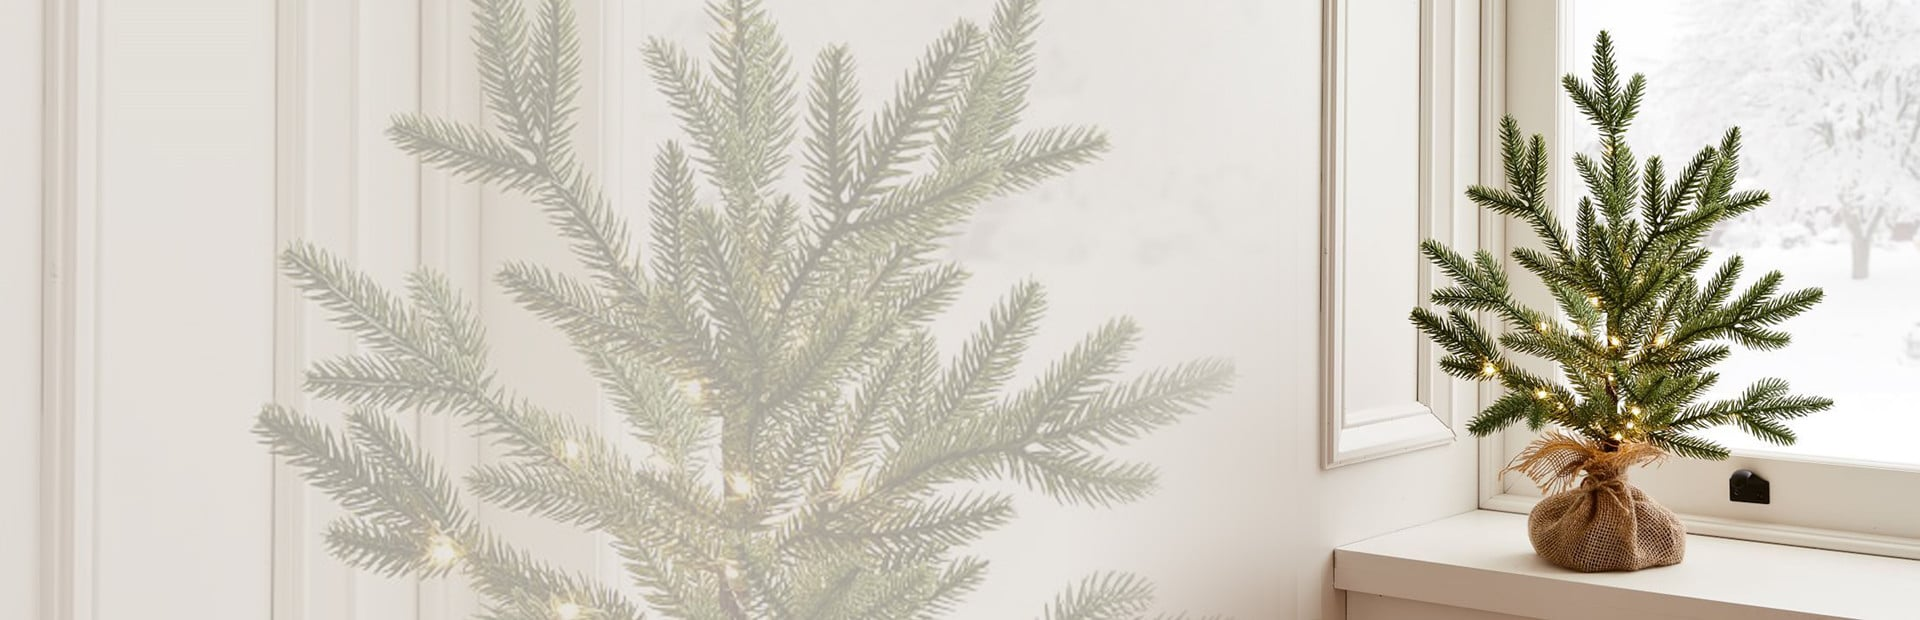 Potted Christmas Tree Banner